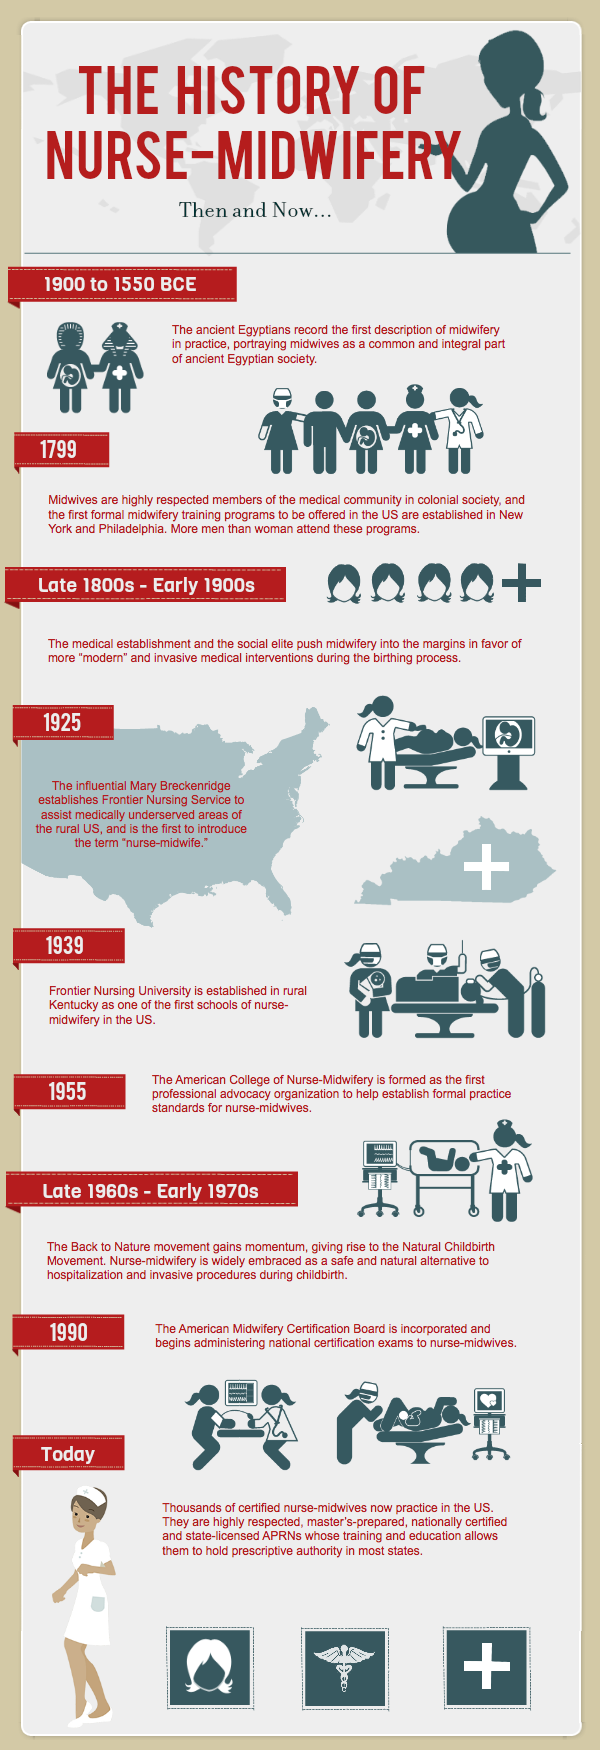 The History of Nurse-Midwifery